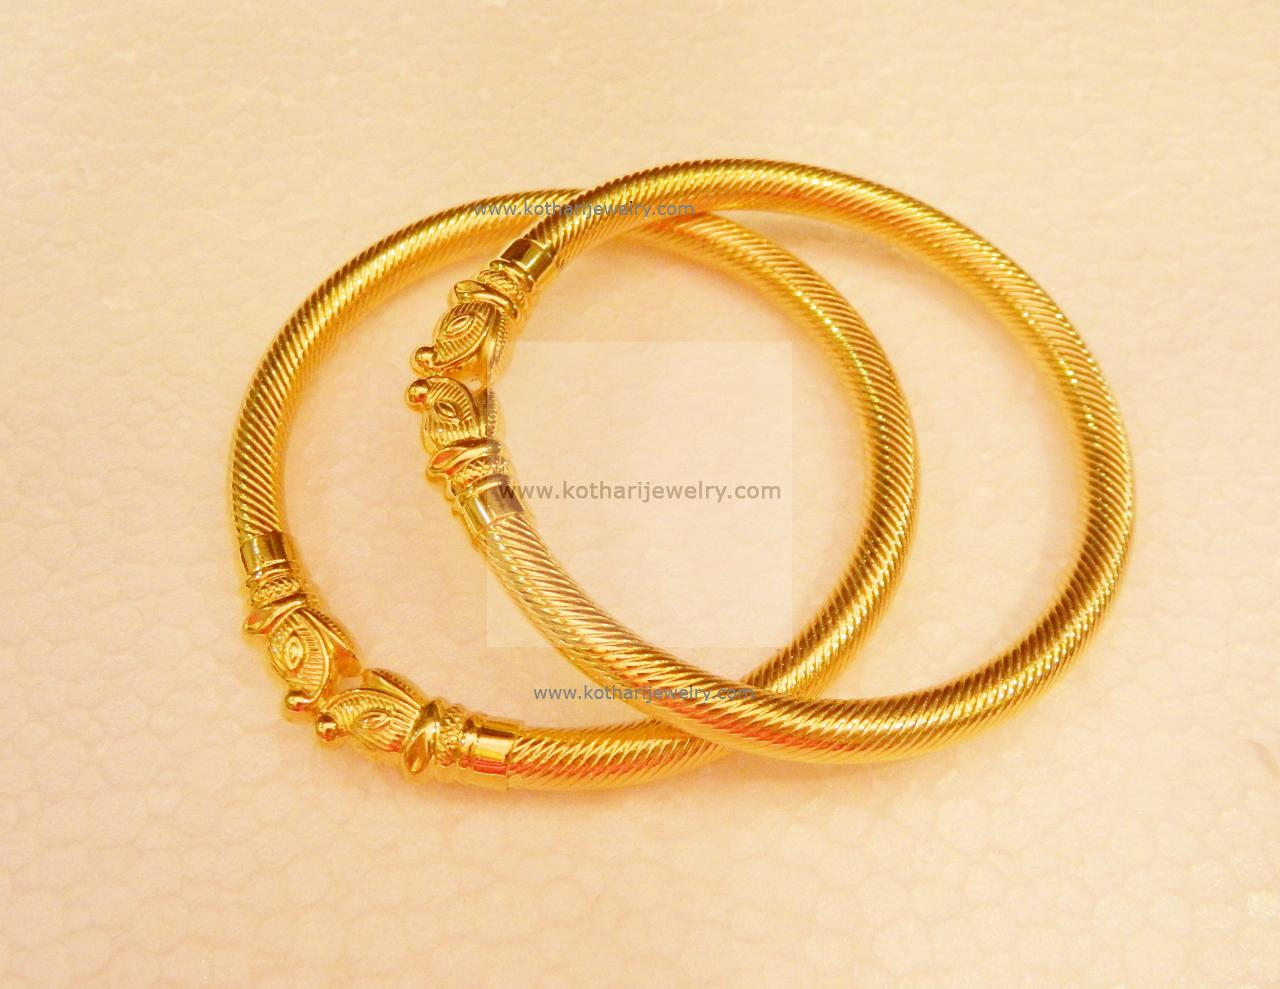 b bangle bracelet plain plated bangles mm gold product kaash